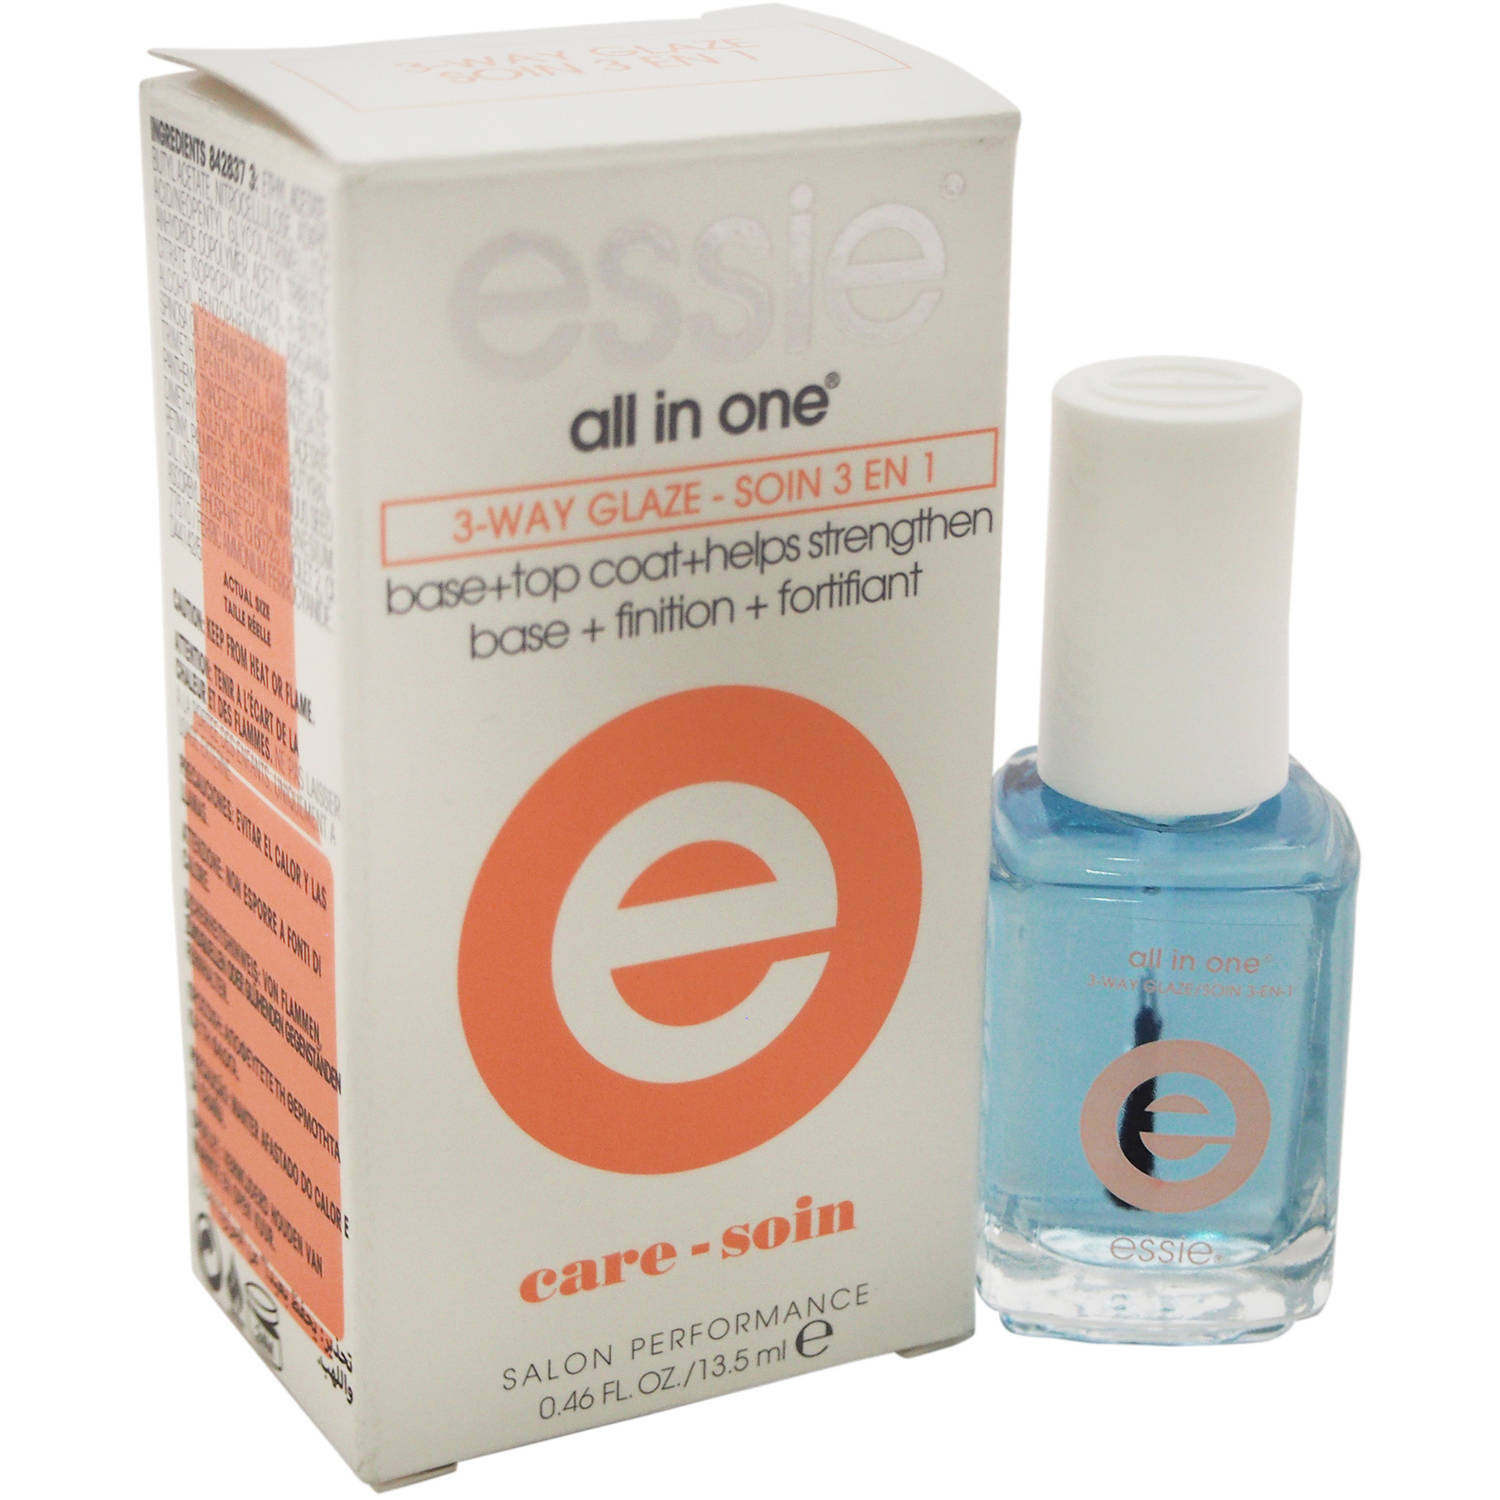 essie for Women All In One 3-Way Glaze Nail Polish, 0.46 oz